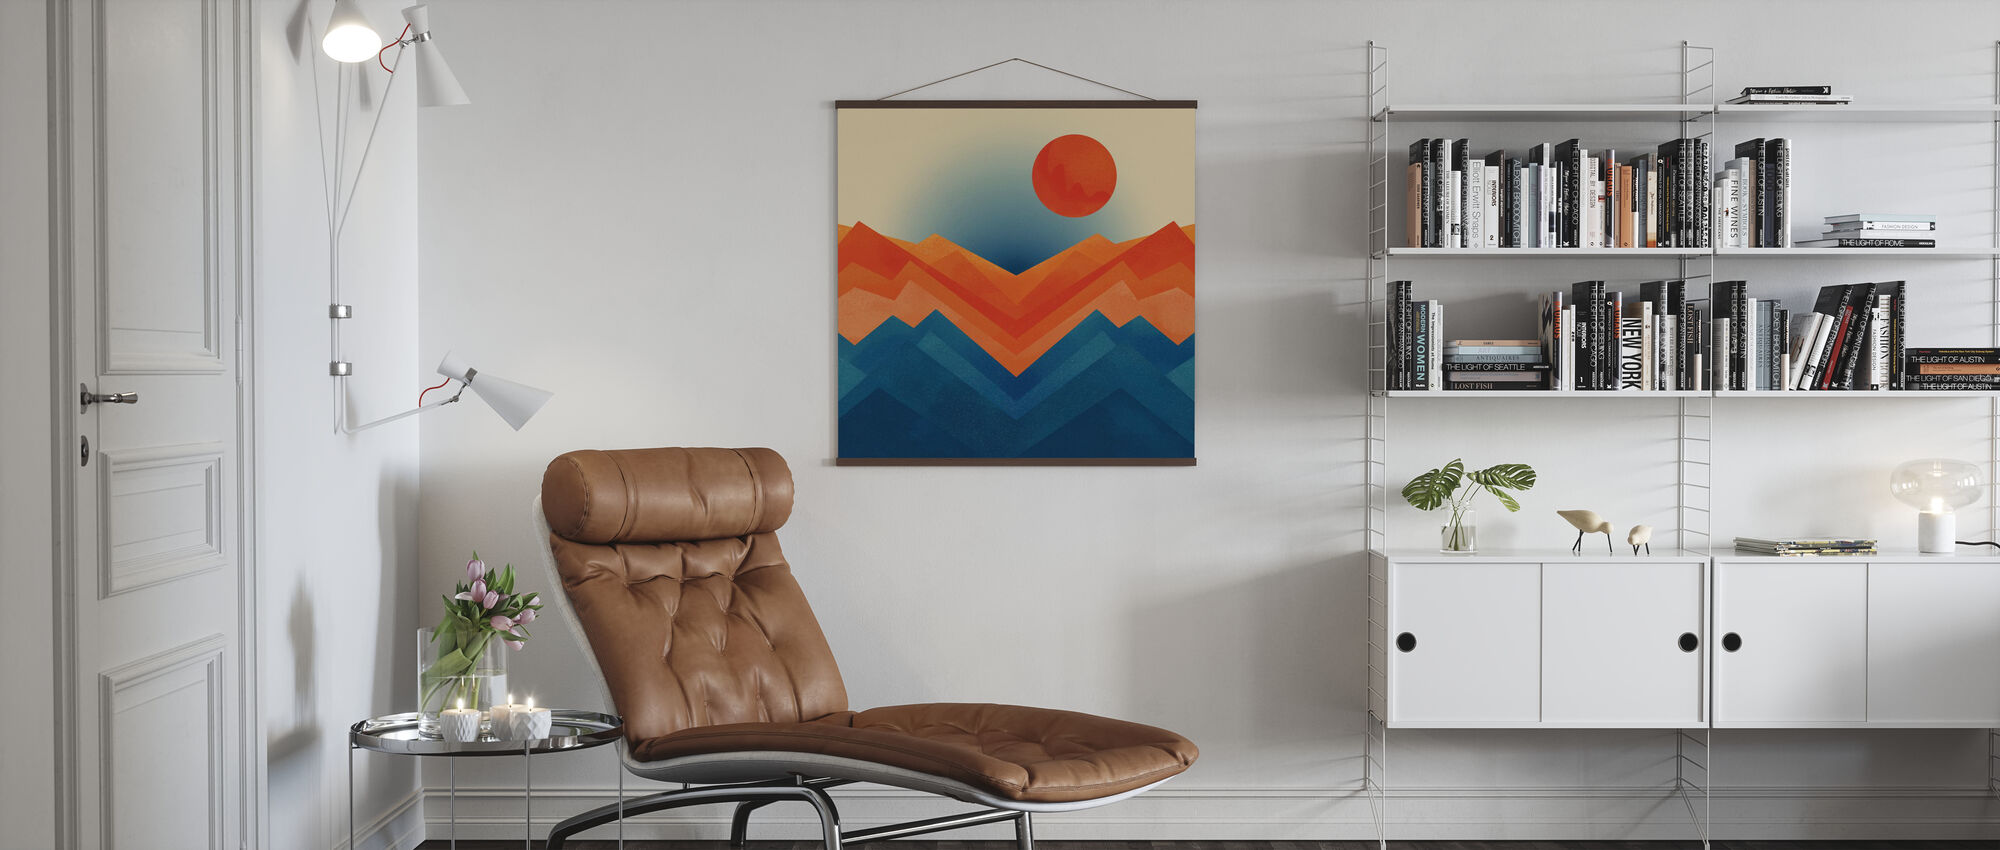 Happy Mountain nr 2 - Poster - Living Room